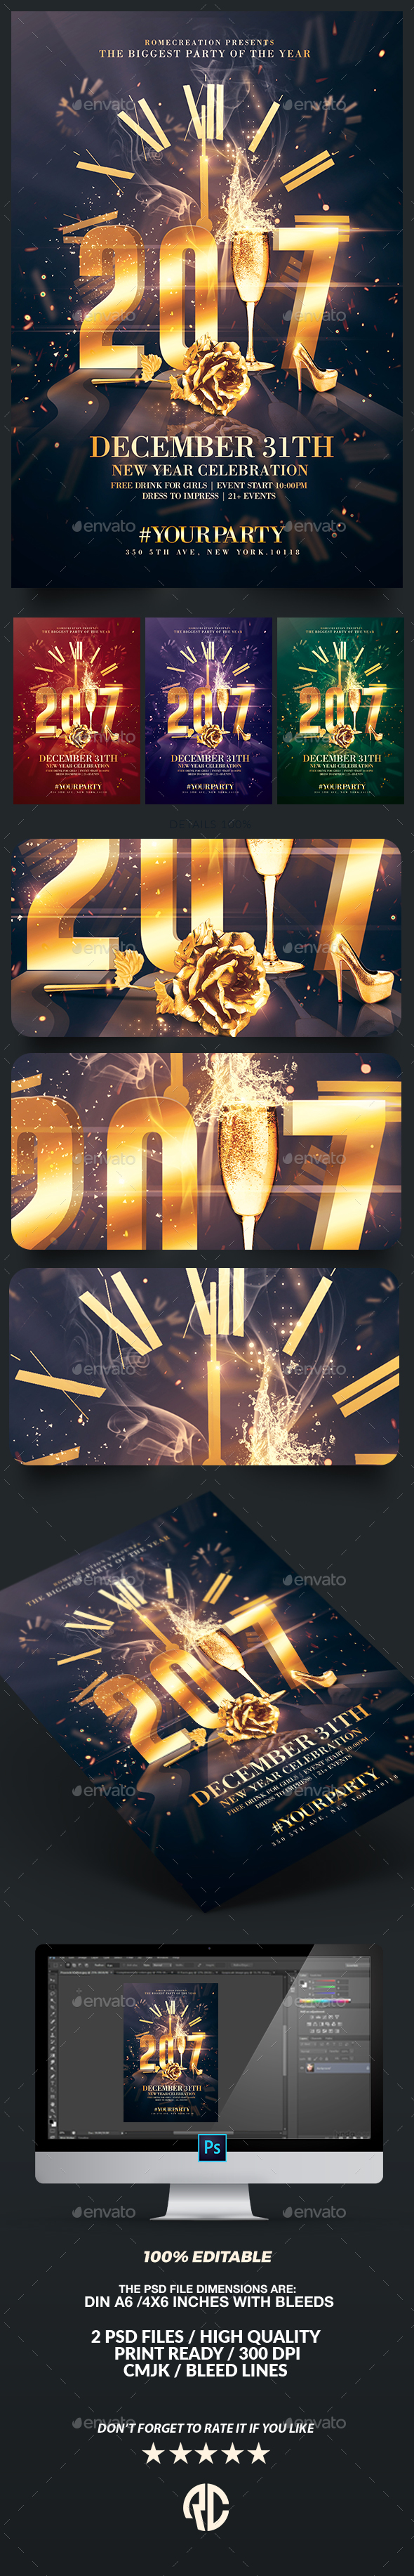 2017 NYE Party | Psd Invitation Template - Clubs & Parties Events